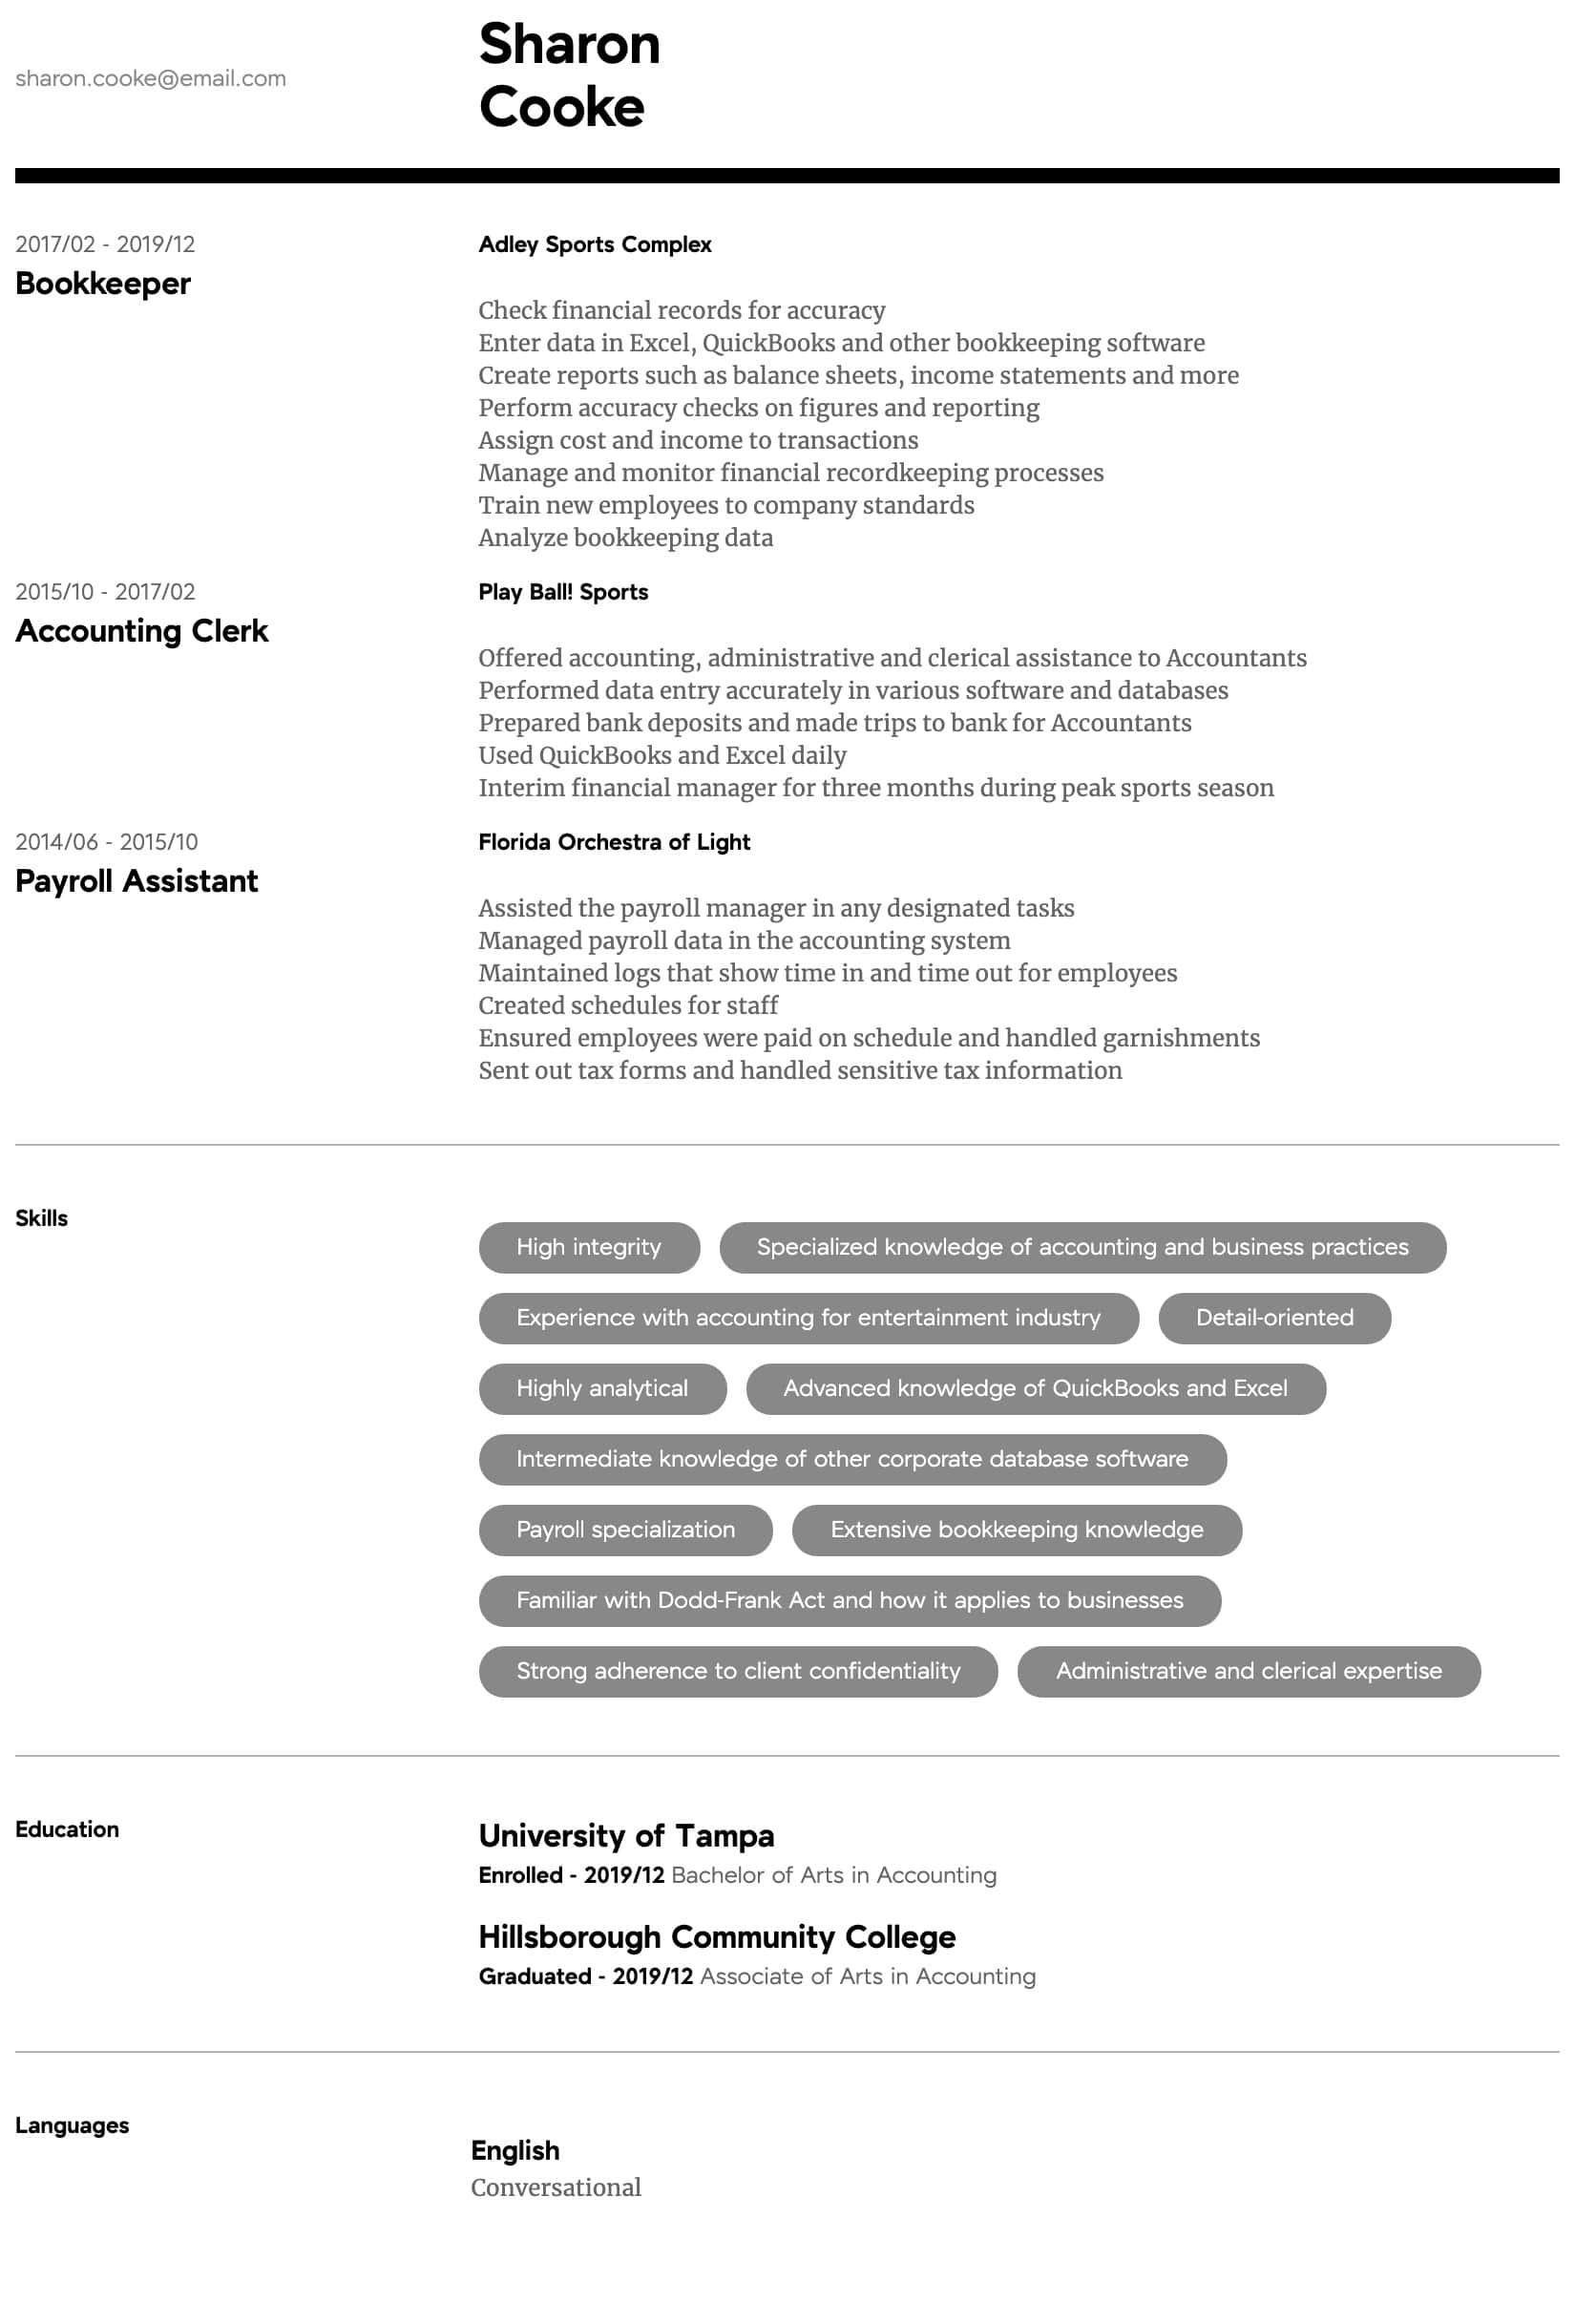 accountant resume samples all experience levels sample intermediate ballet law school Resume Accountant Resume Sample